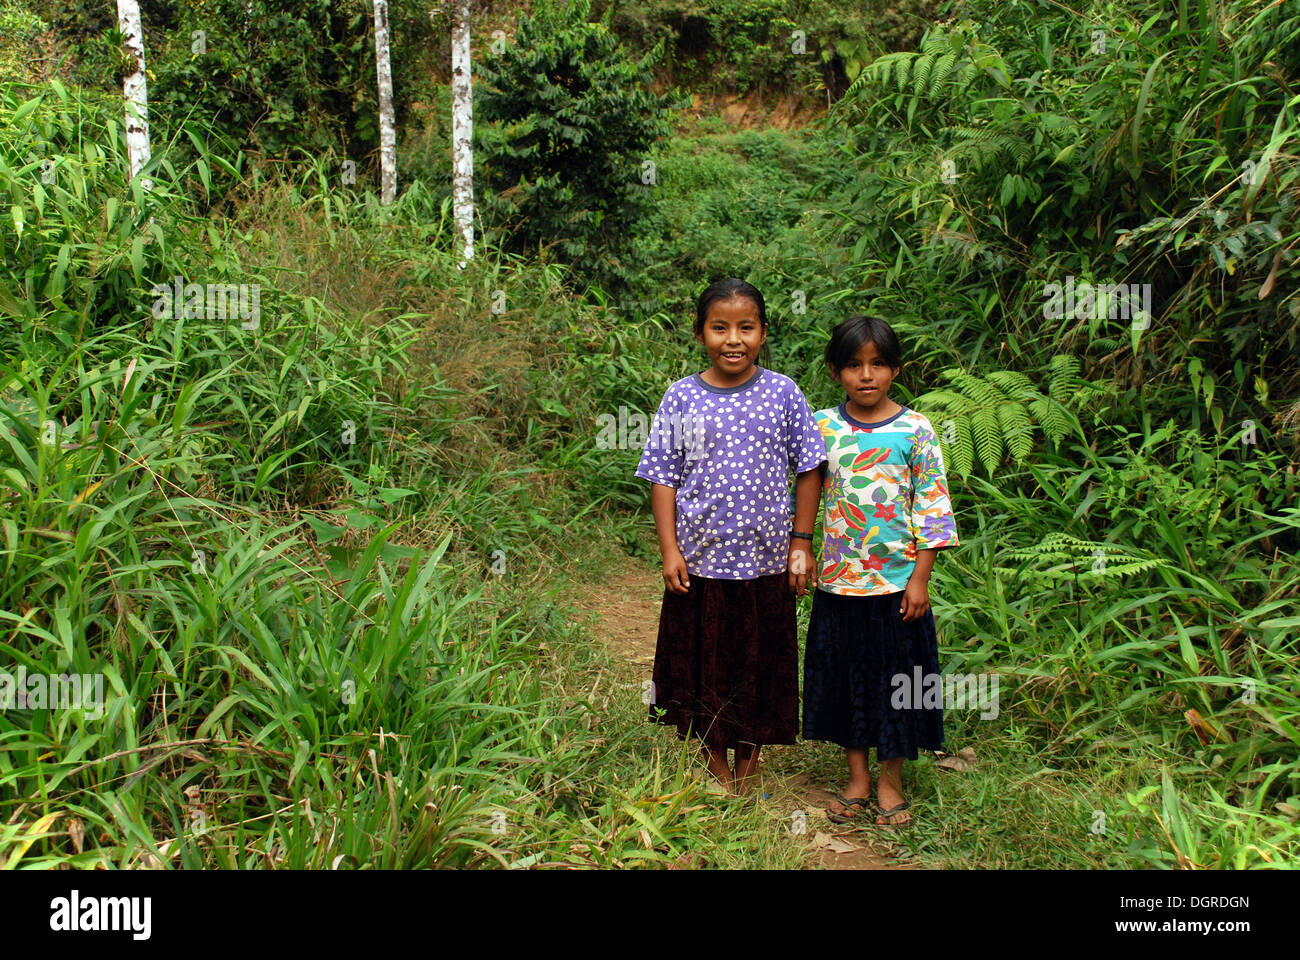 Two girls of the indigenous peoples, Amazonia, Bolivia, South America - Stock Image